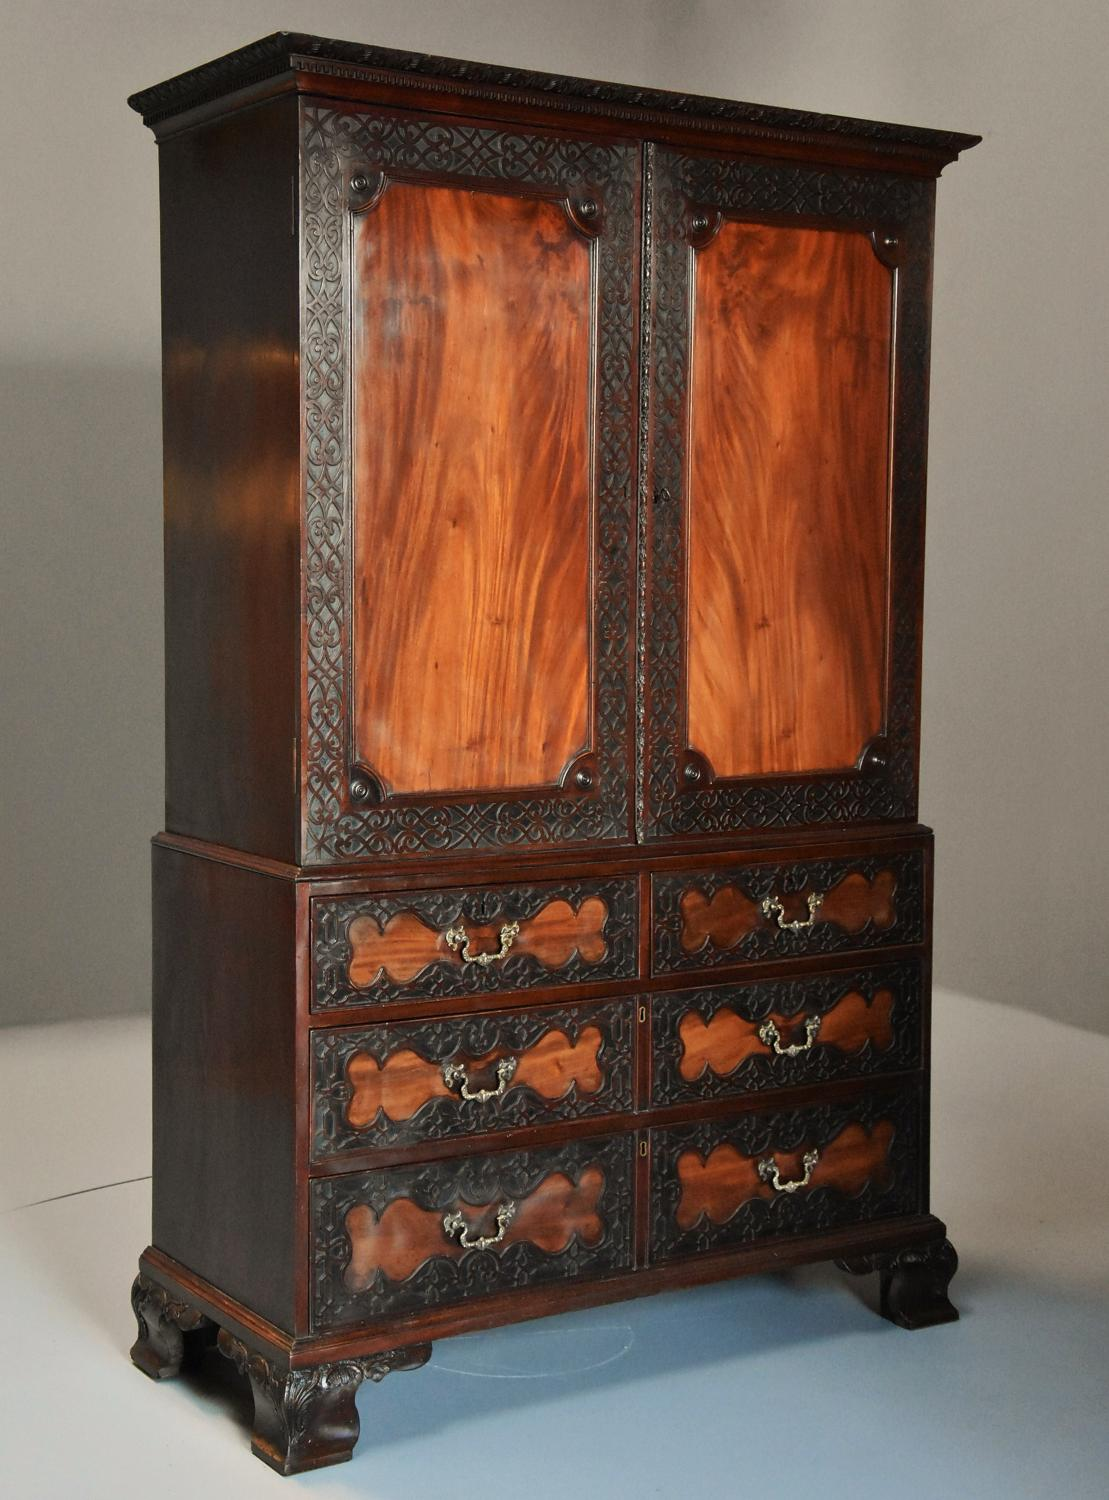 Superb quality mid 19thc mahogany press cupboard in the 18thc style